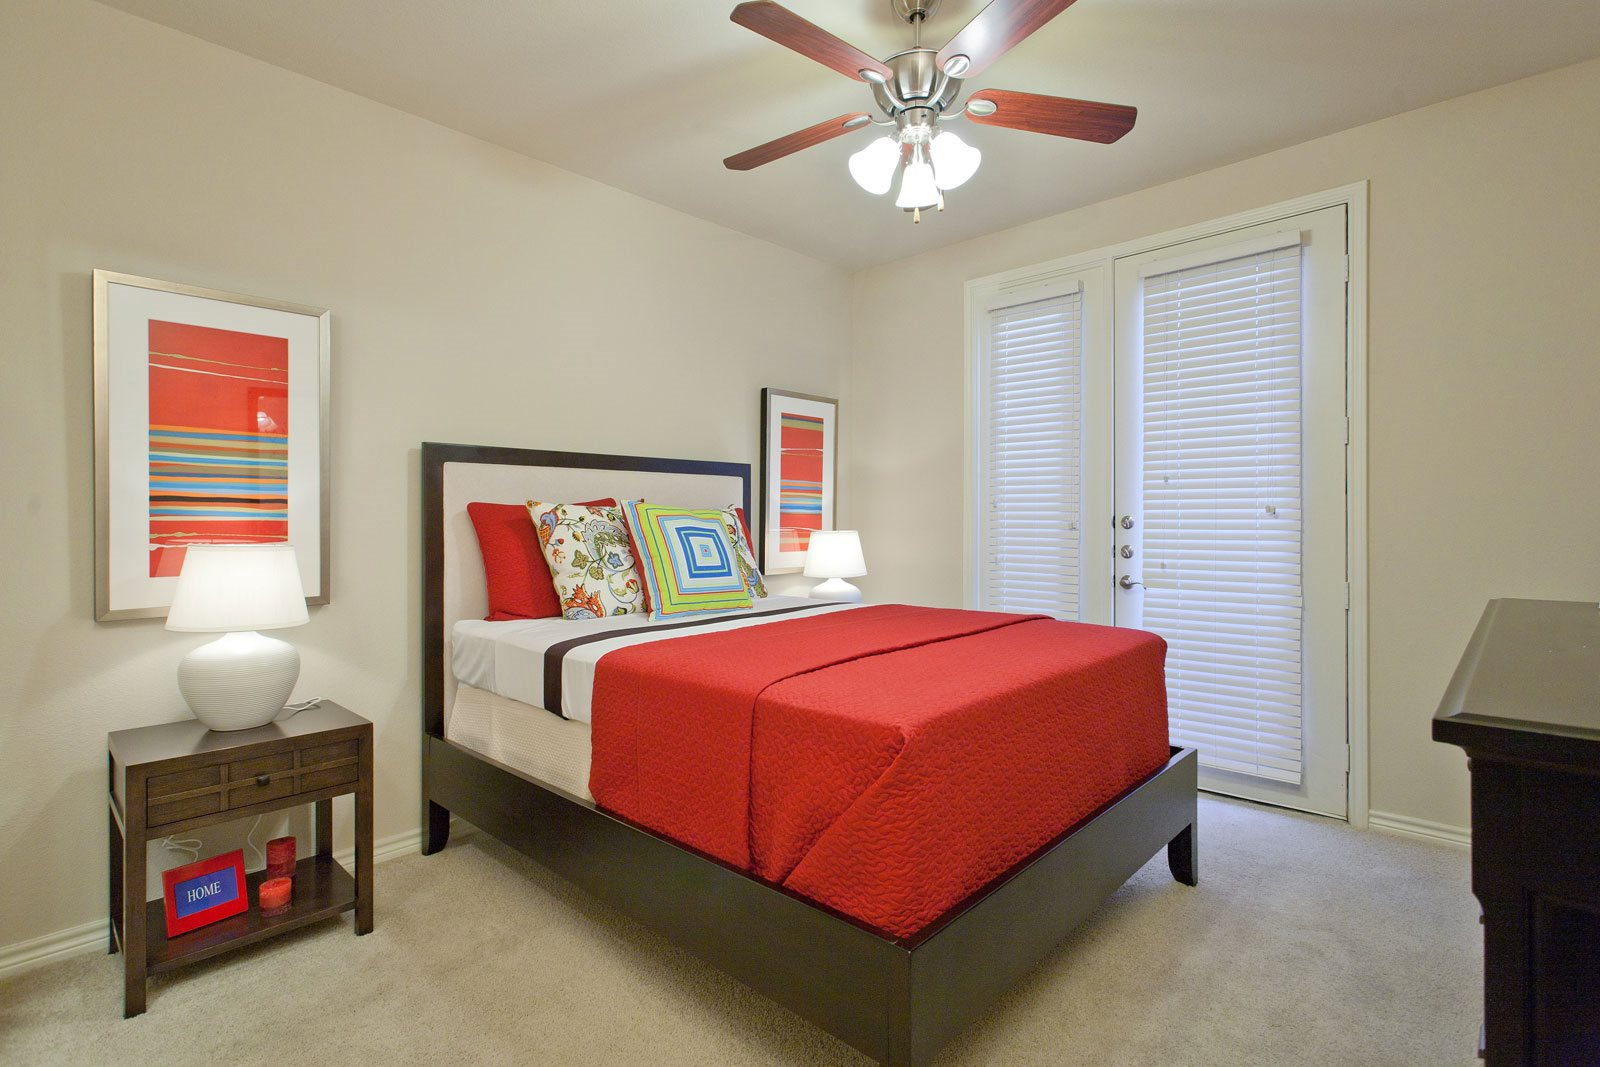 Bedrooms with Attached Patio/Balcony Available at Trianon by Windsor, Dallas, TX